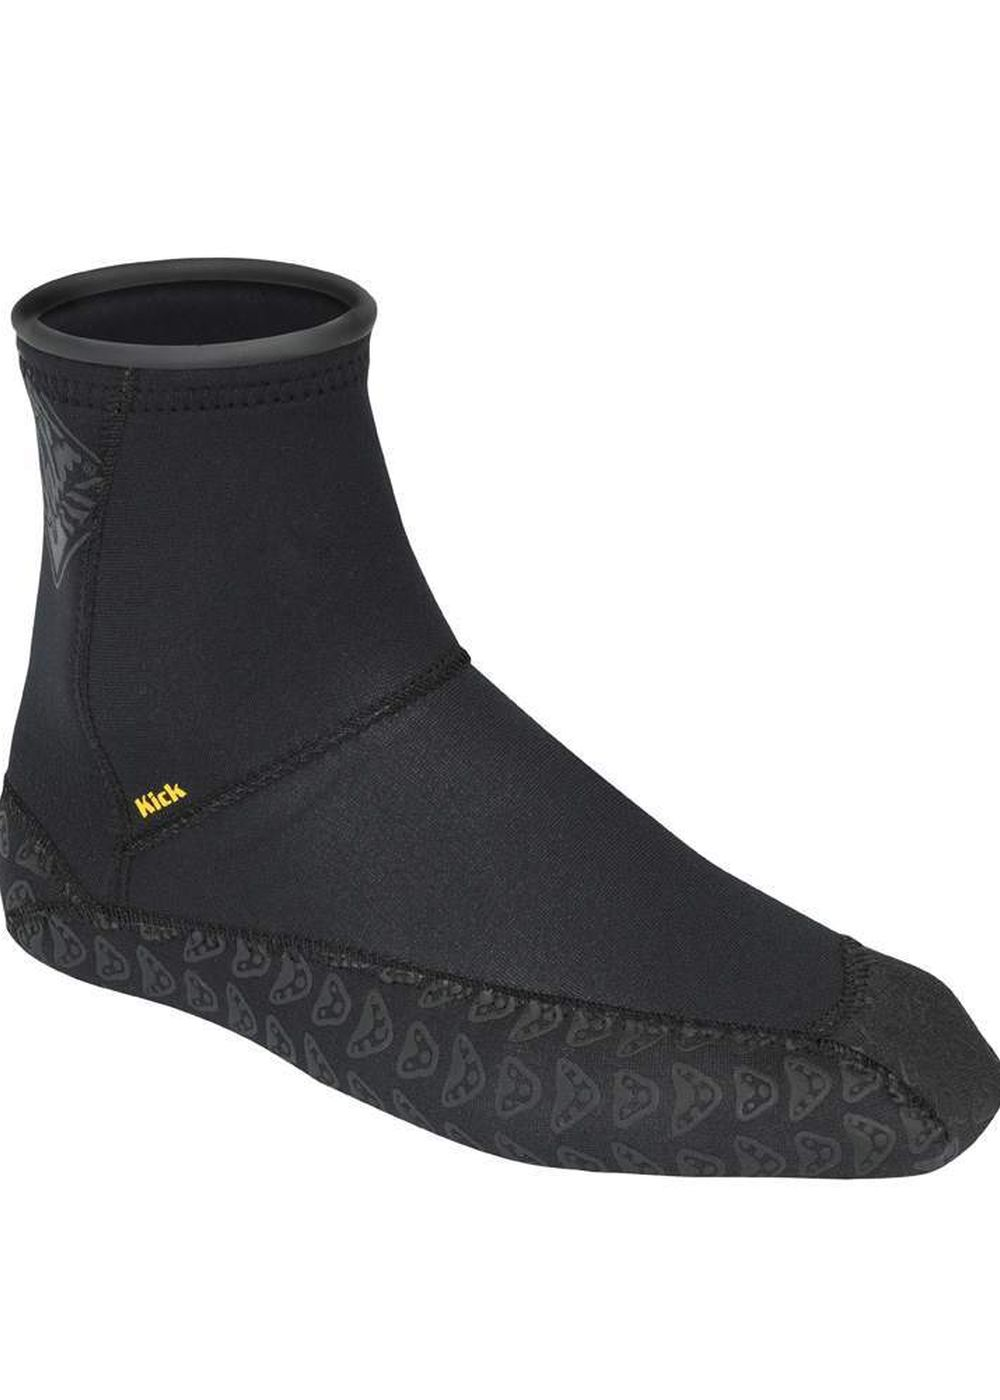 Palm Kick 3mm Rt Wetsuit Socks Picture